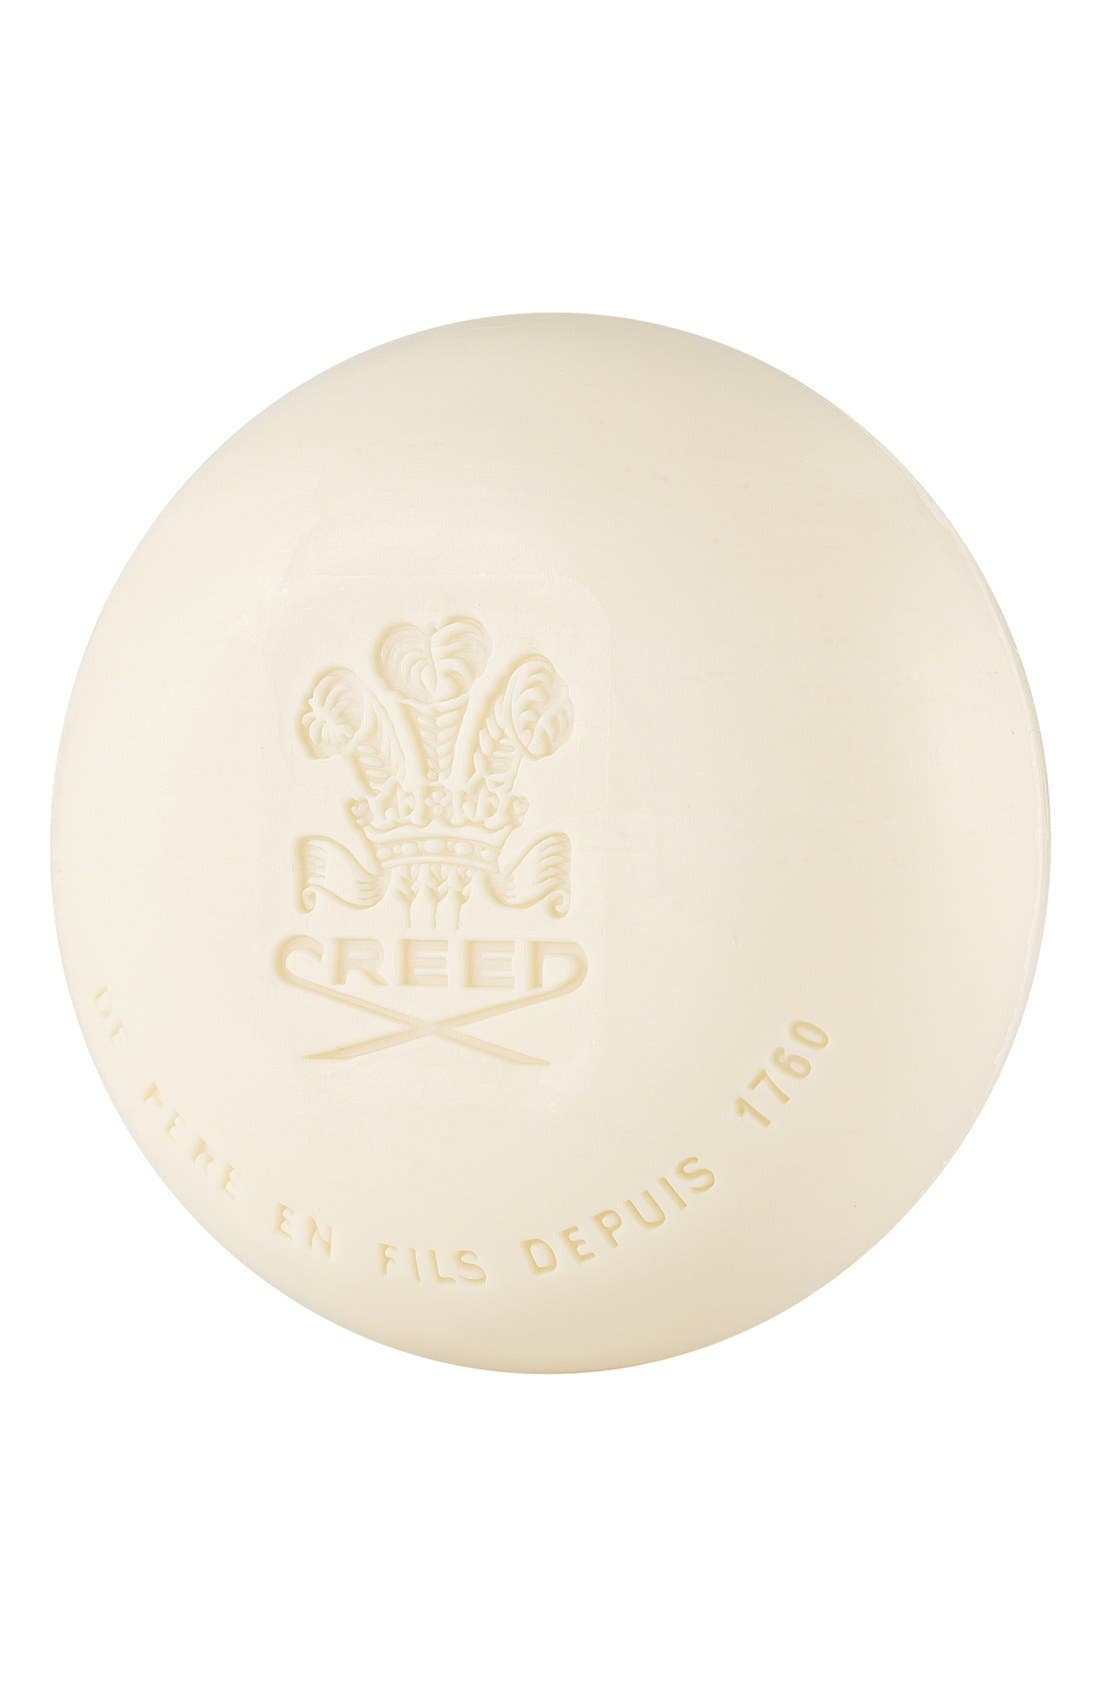 Creed 'Silver Mountain Water' Soap